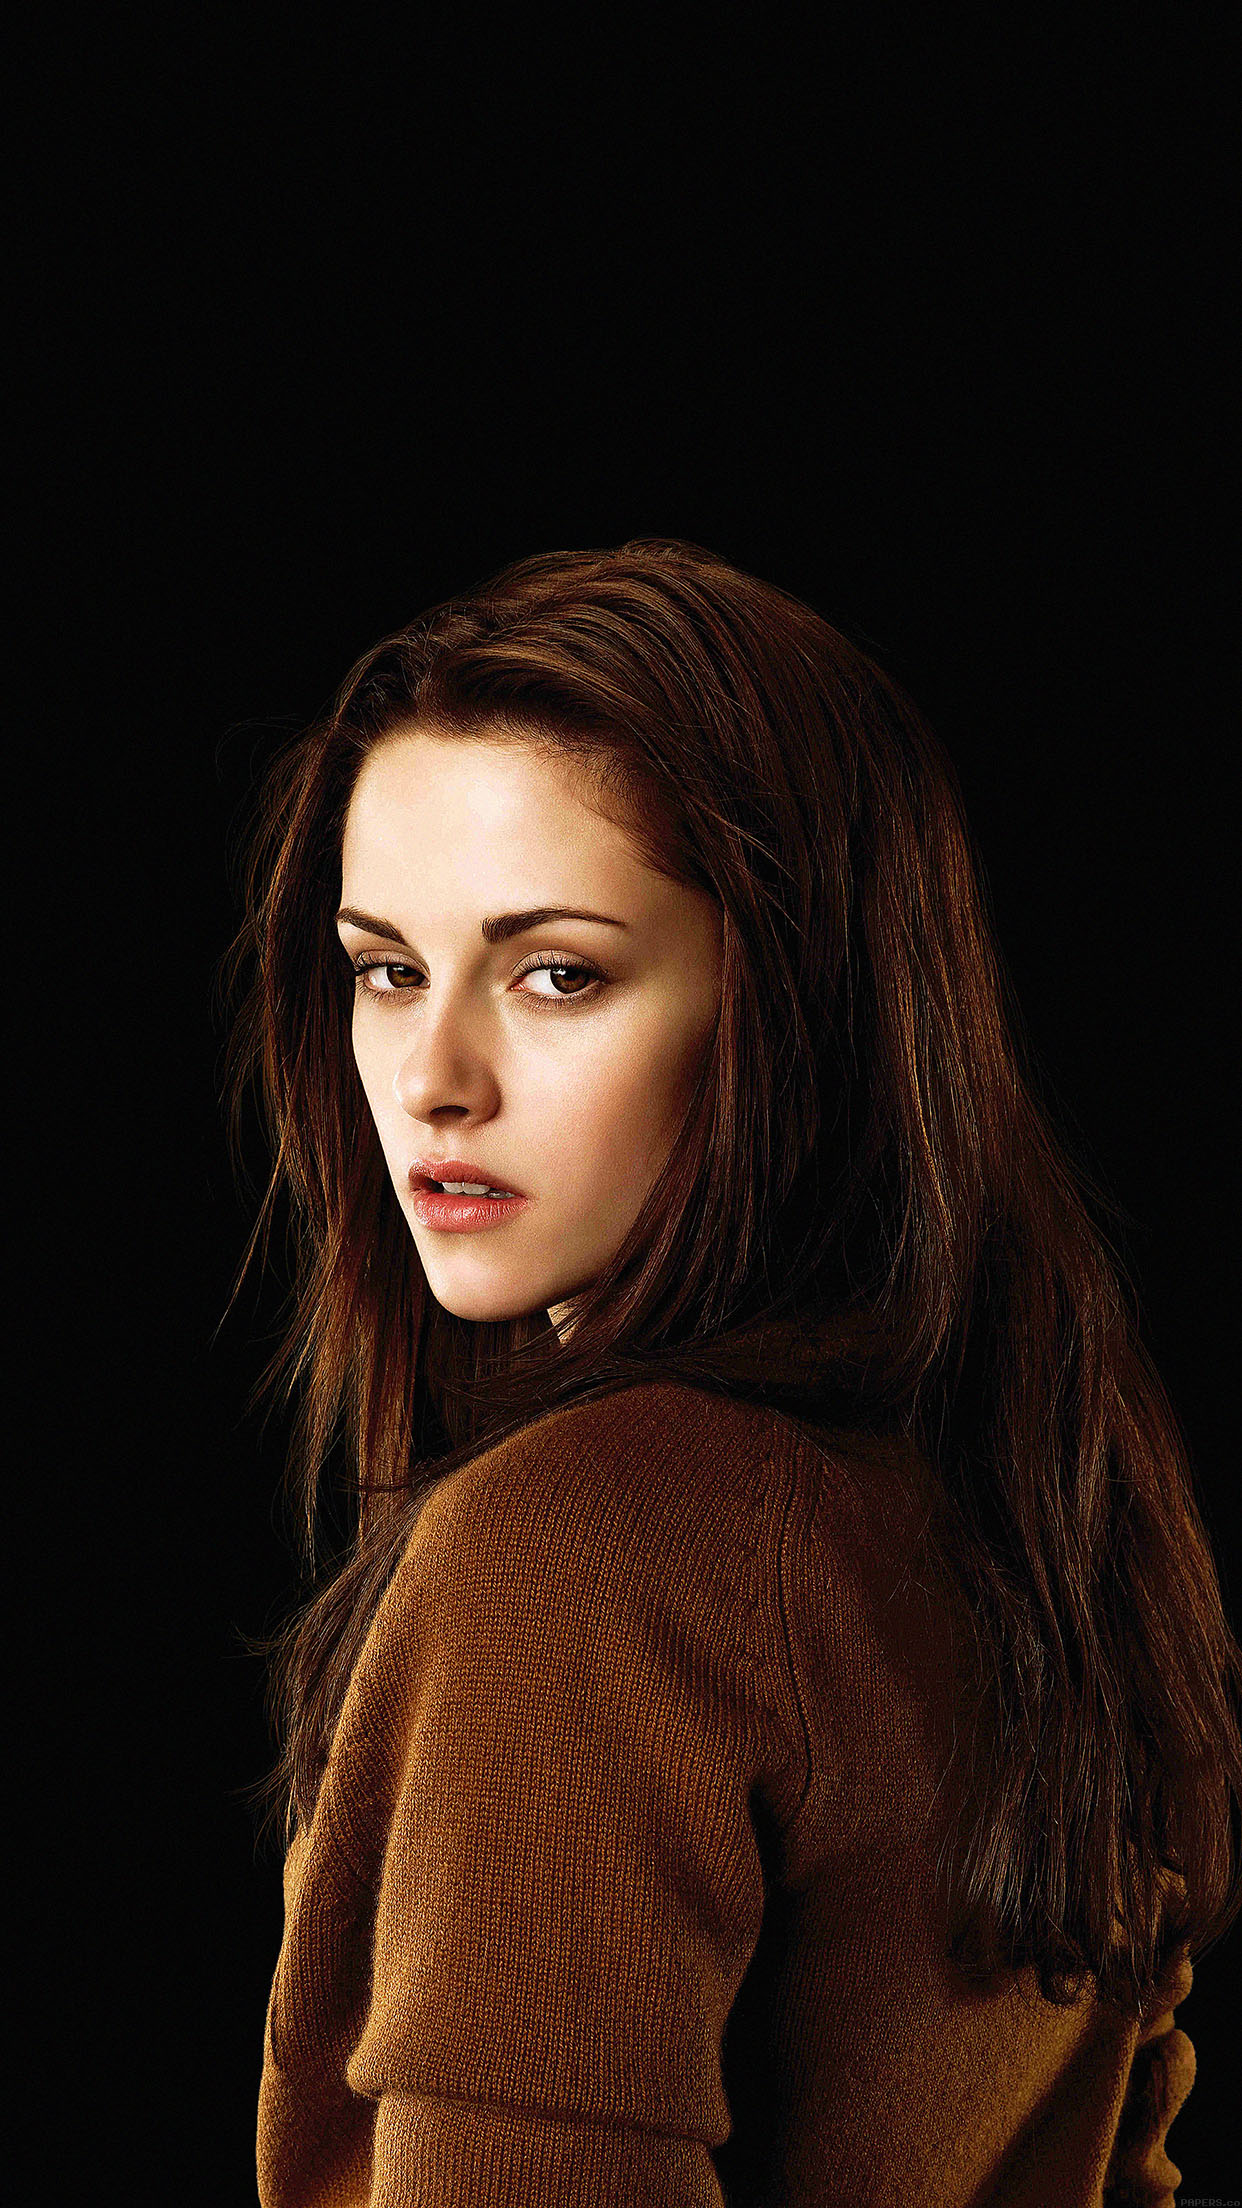 iphone6papers - hb17-wallpaper-kristen-stewart-twilight-bella-wwan-film